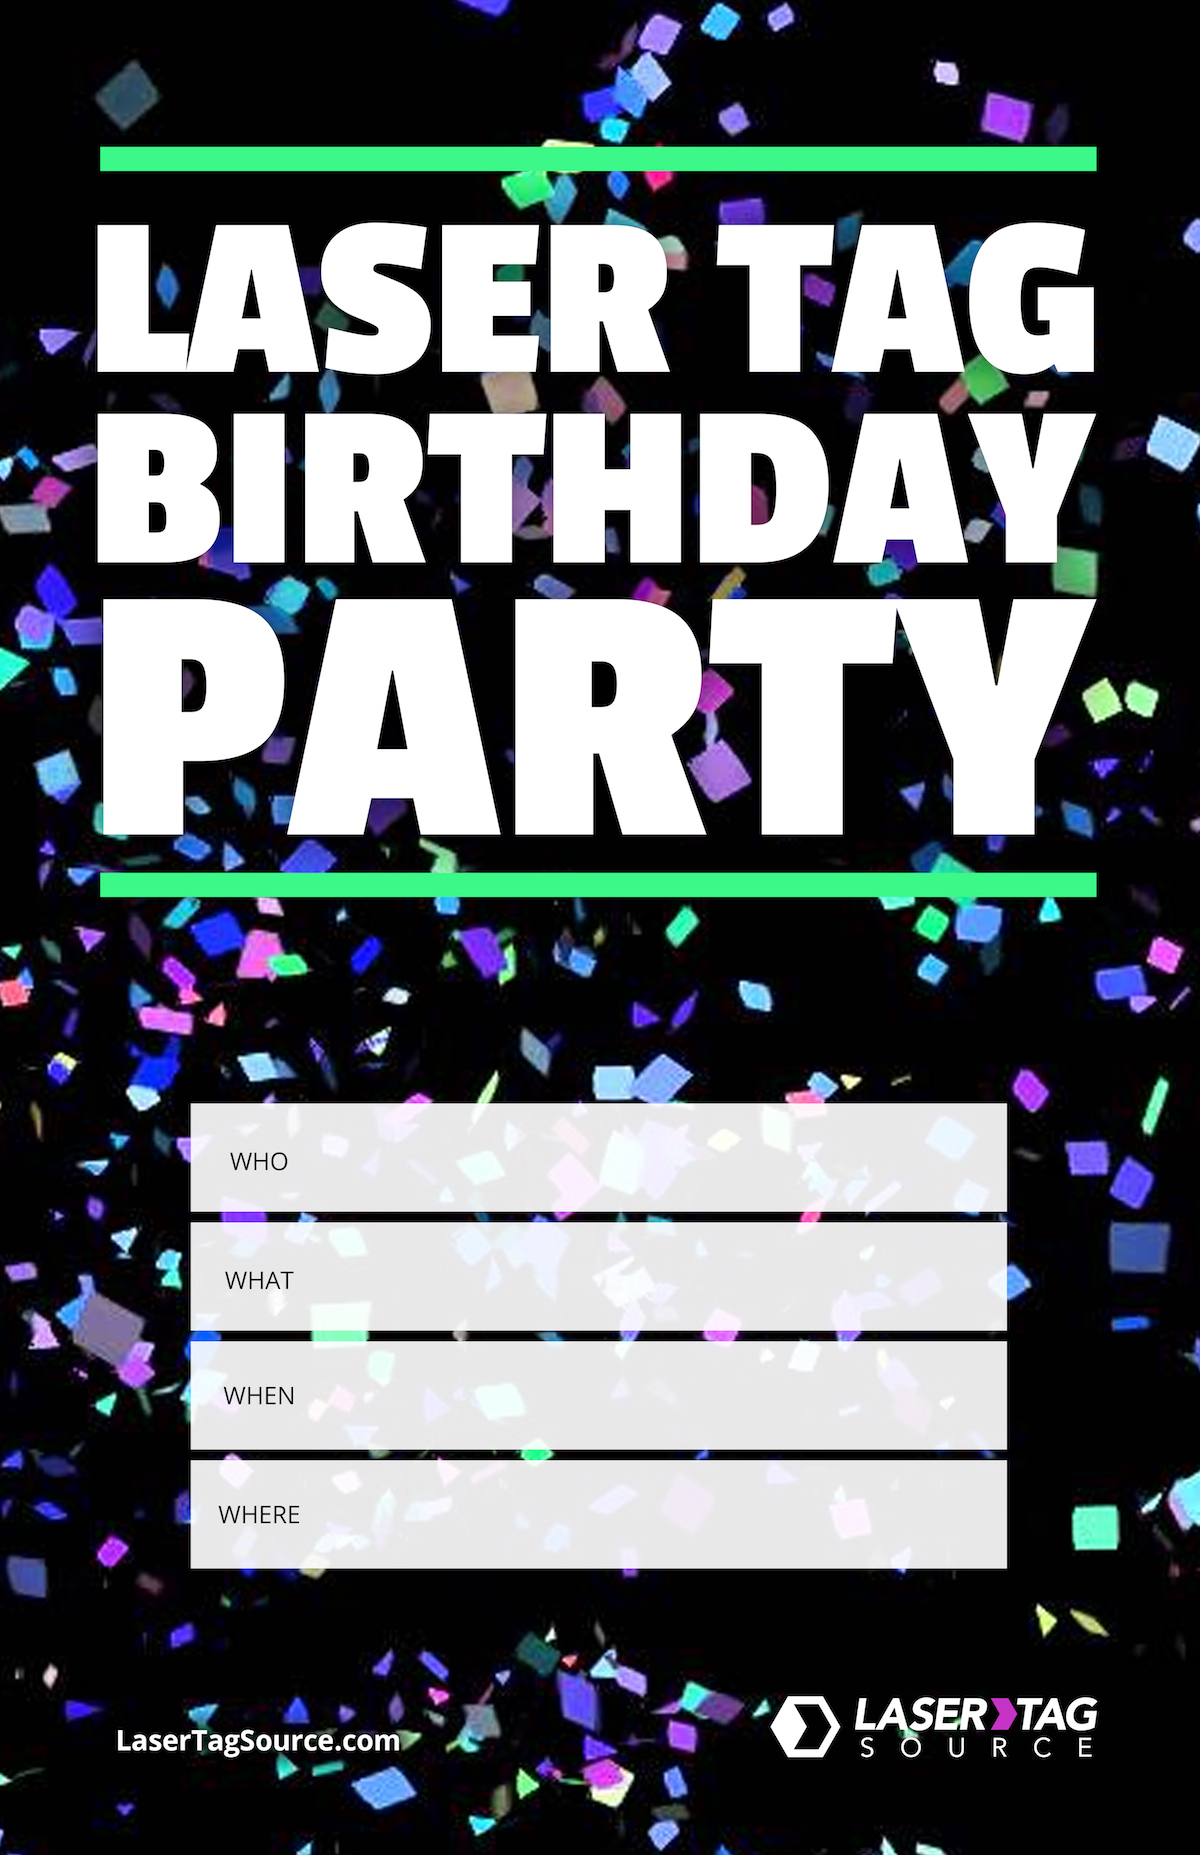 mobile laser tag birthday party ; Birthday-Party-Laser-Tag-Event-Poster